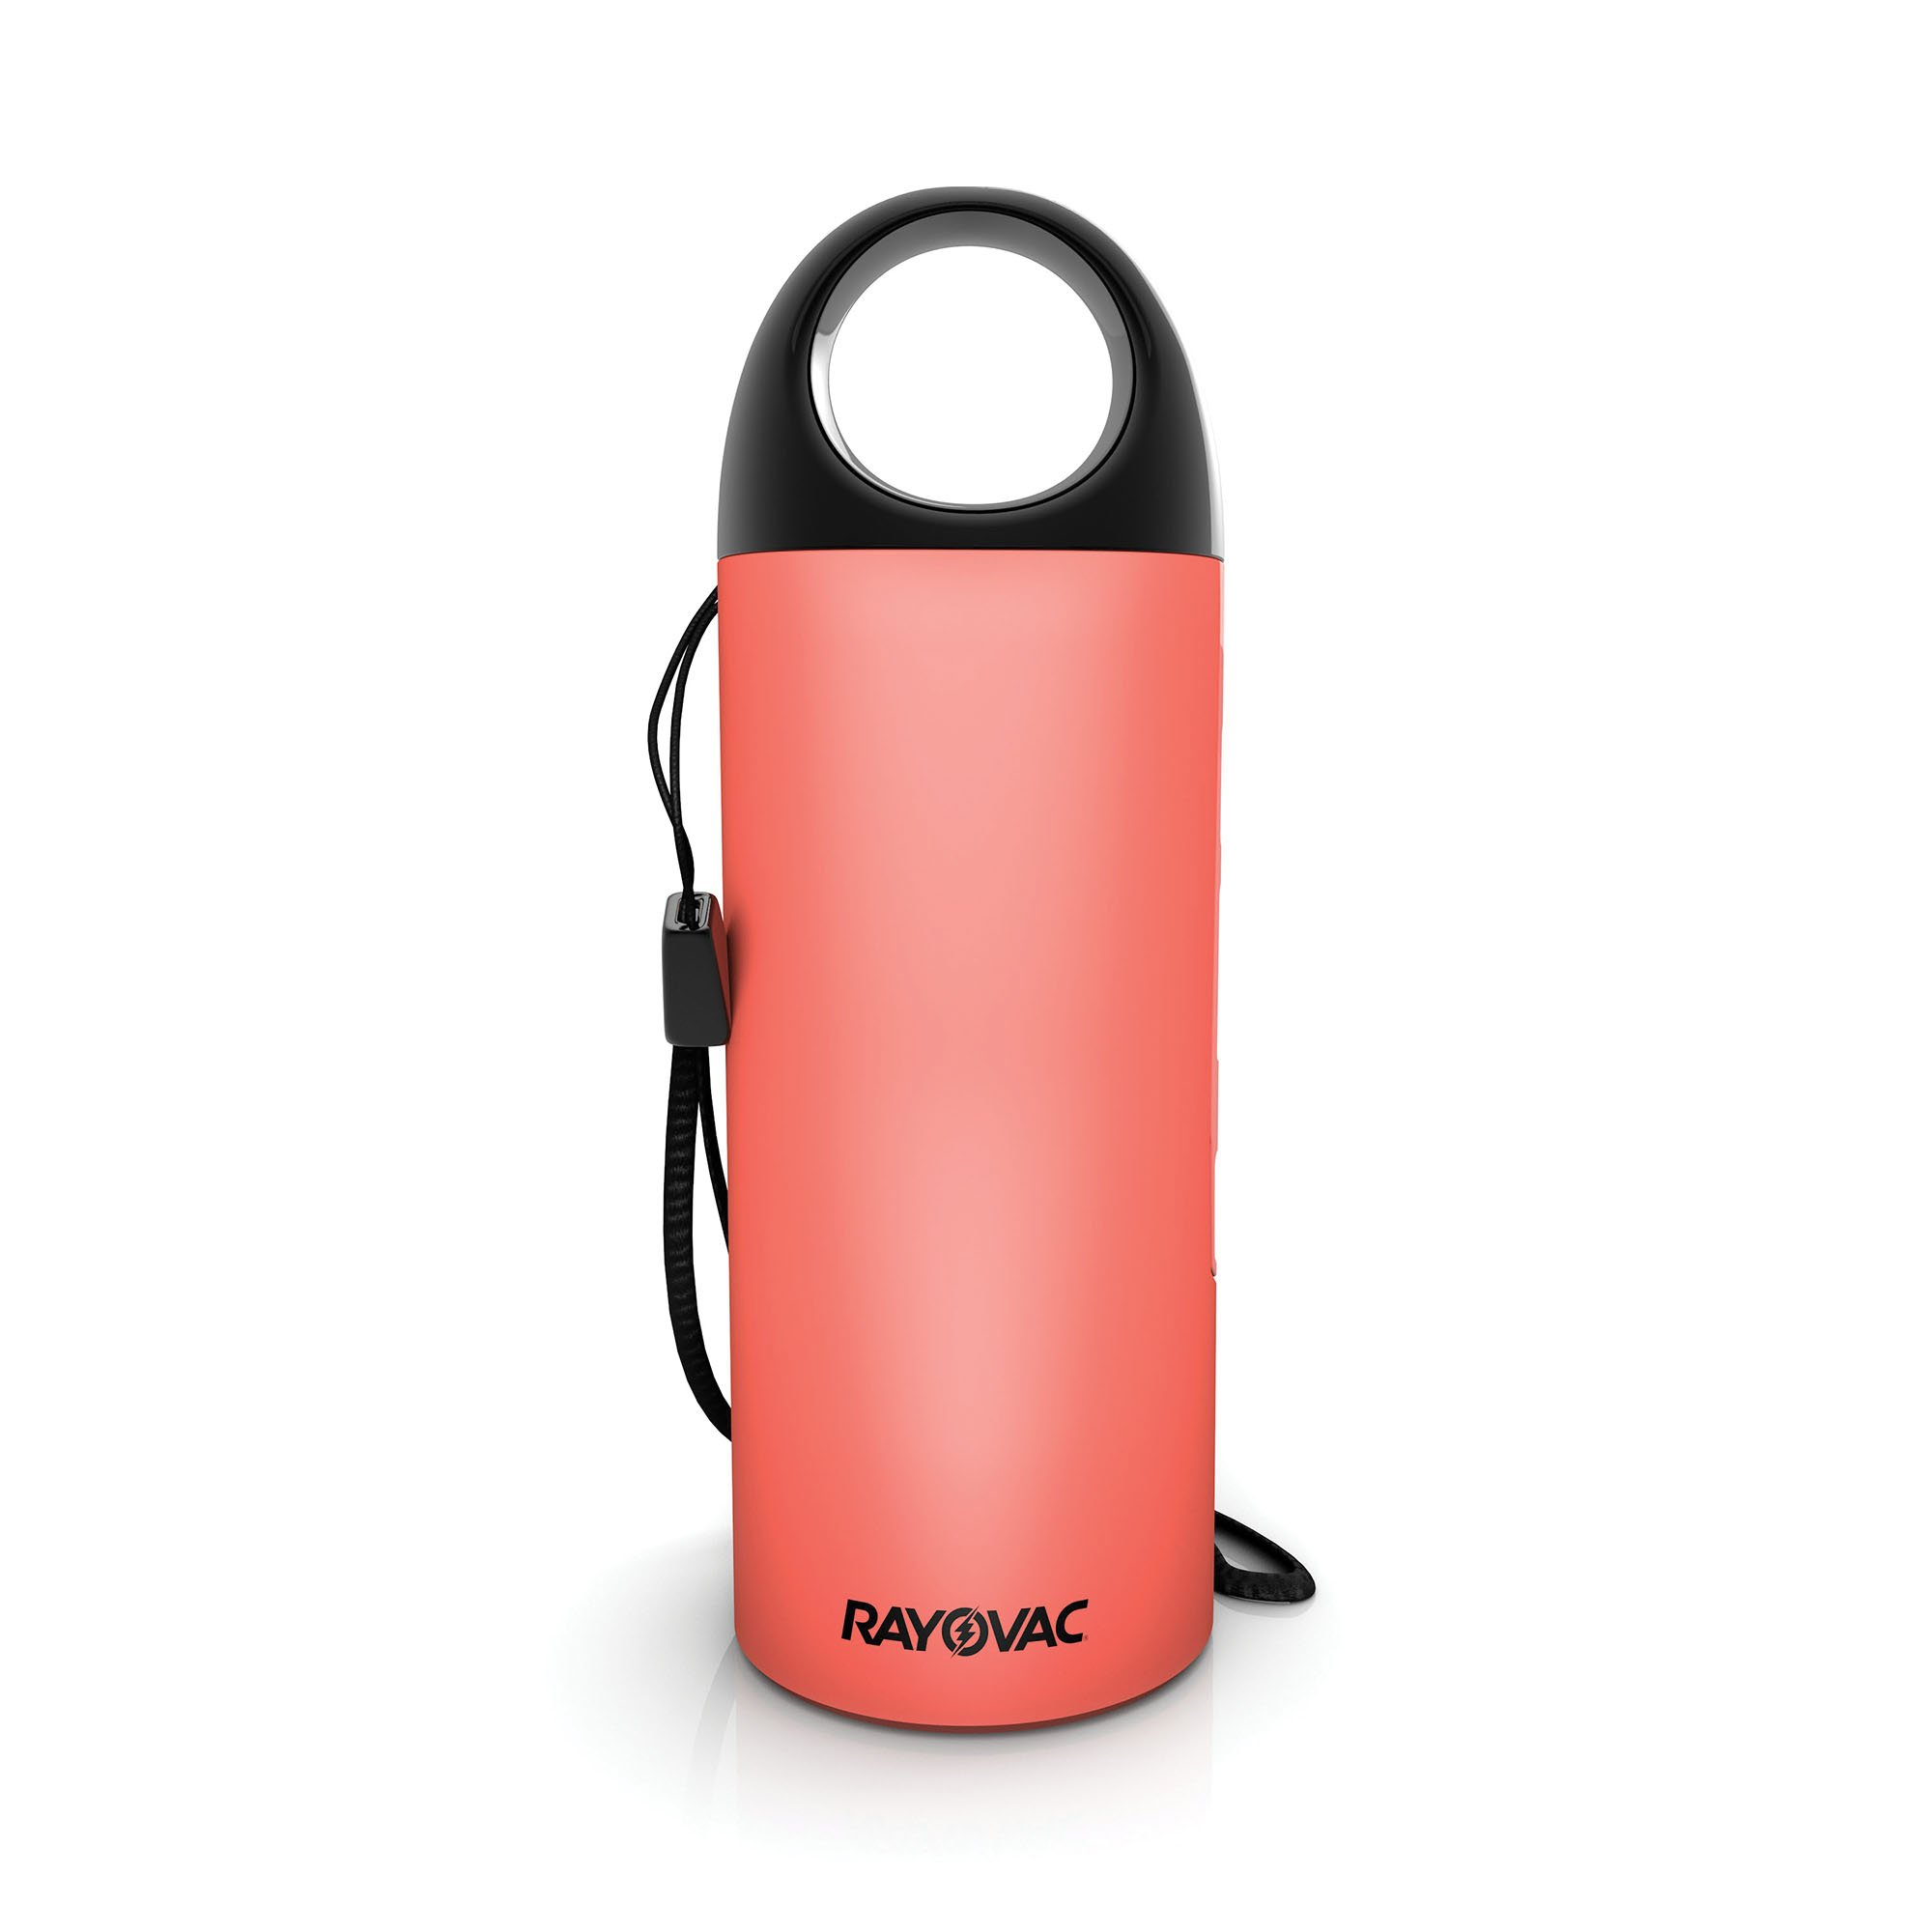 Rayovac Power Protect Safety Siren & Portable Charger, Coral, PS99CL